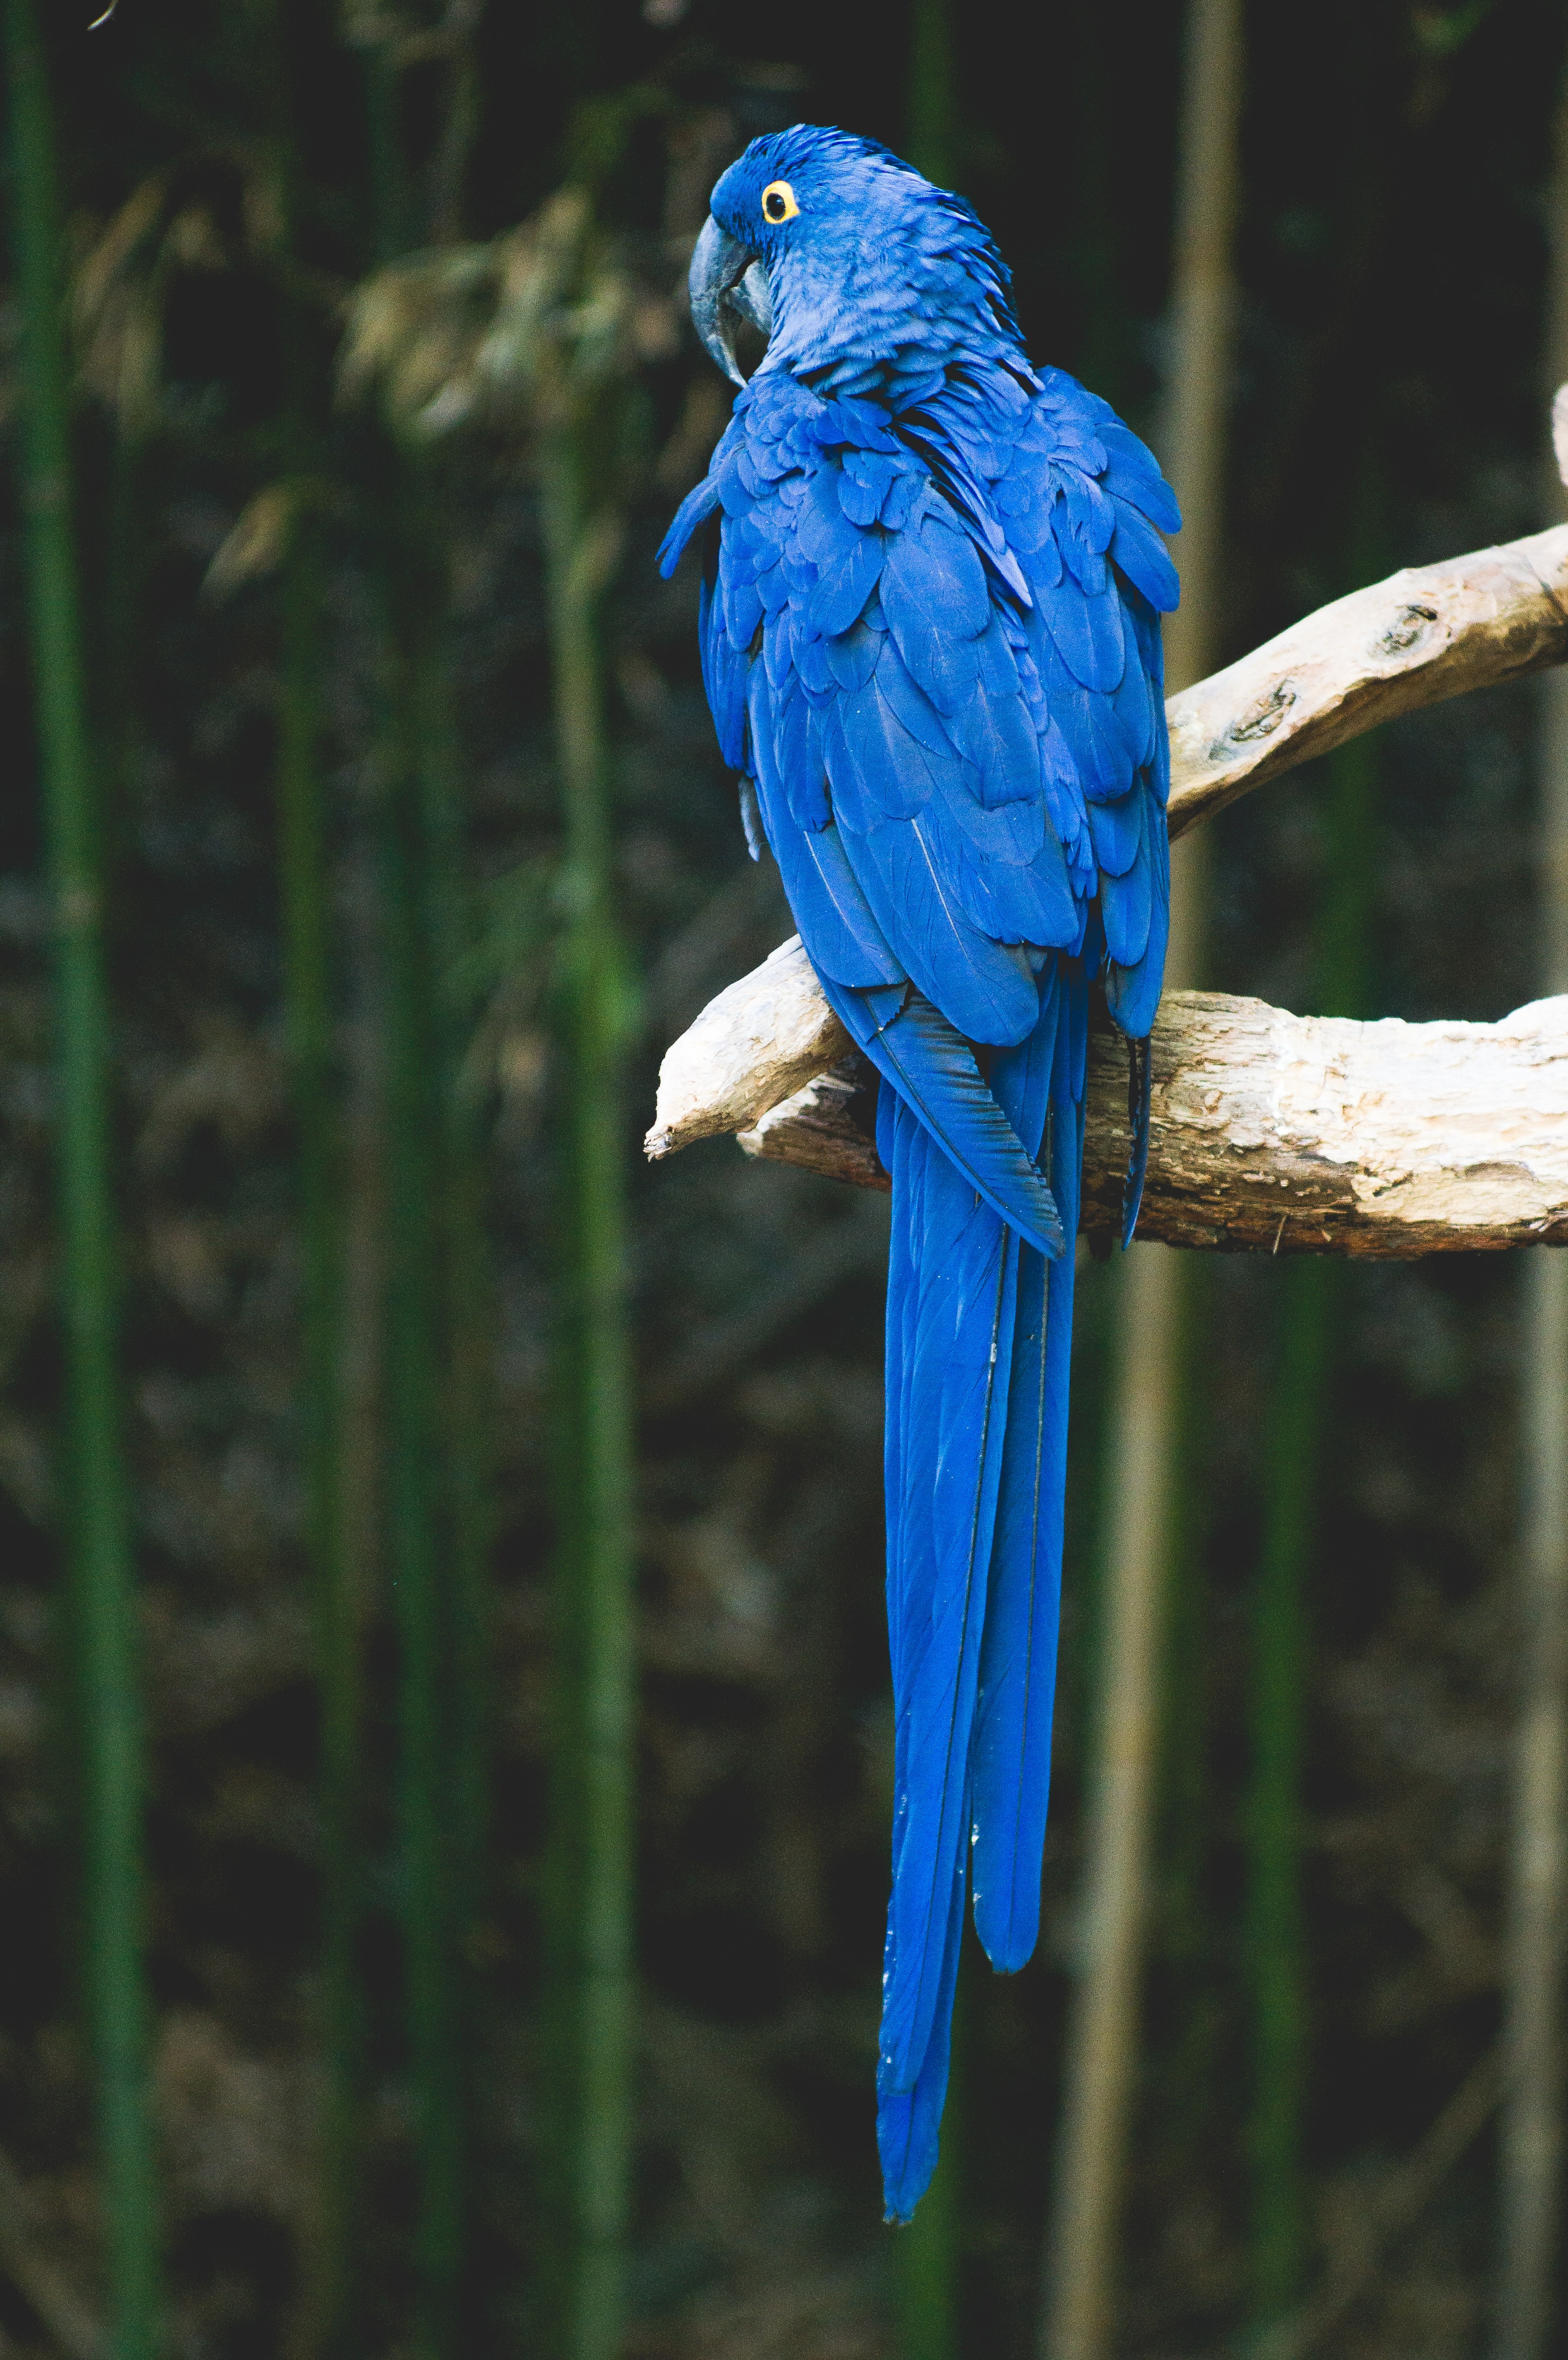 bird pictures download free images on unsplash